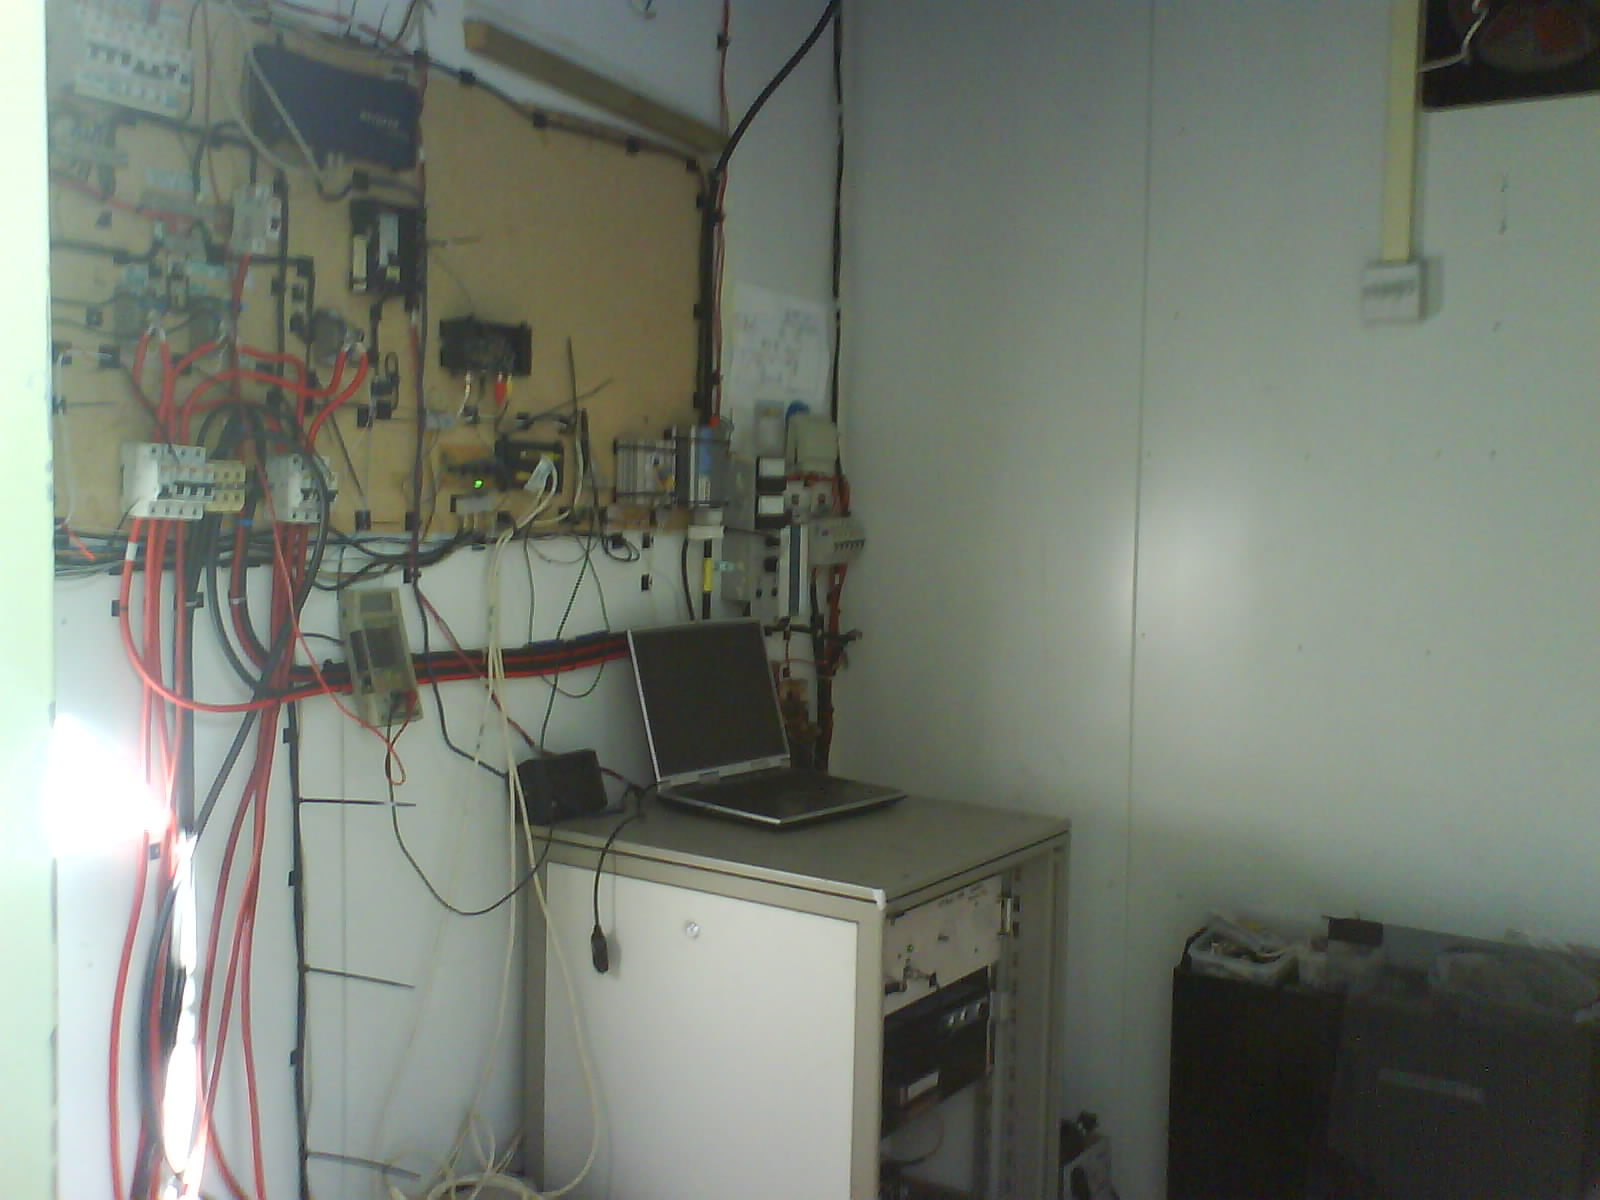 GB3WB Repeater Equipment